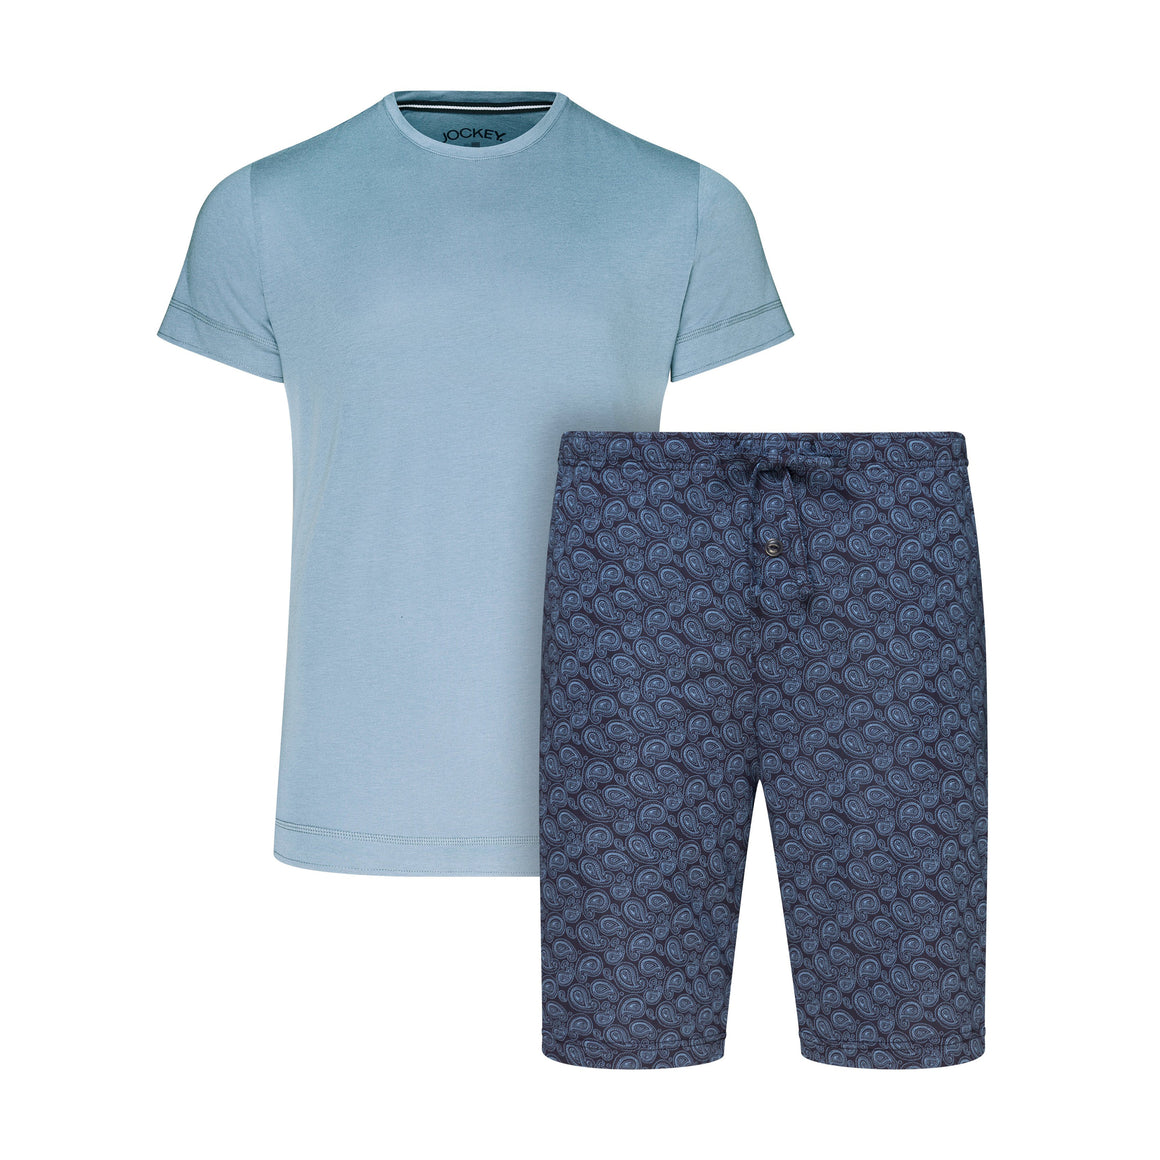 Everyday 1/2 Knit Short Pyjamas for Men in Denim